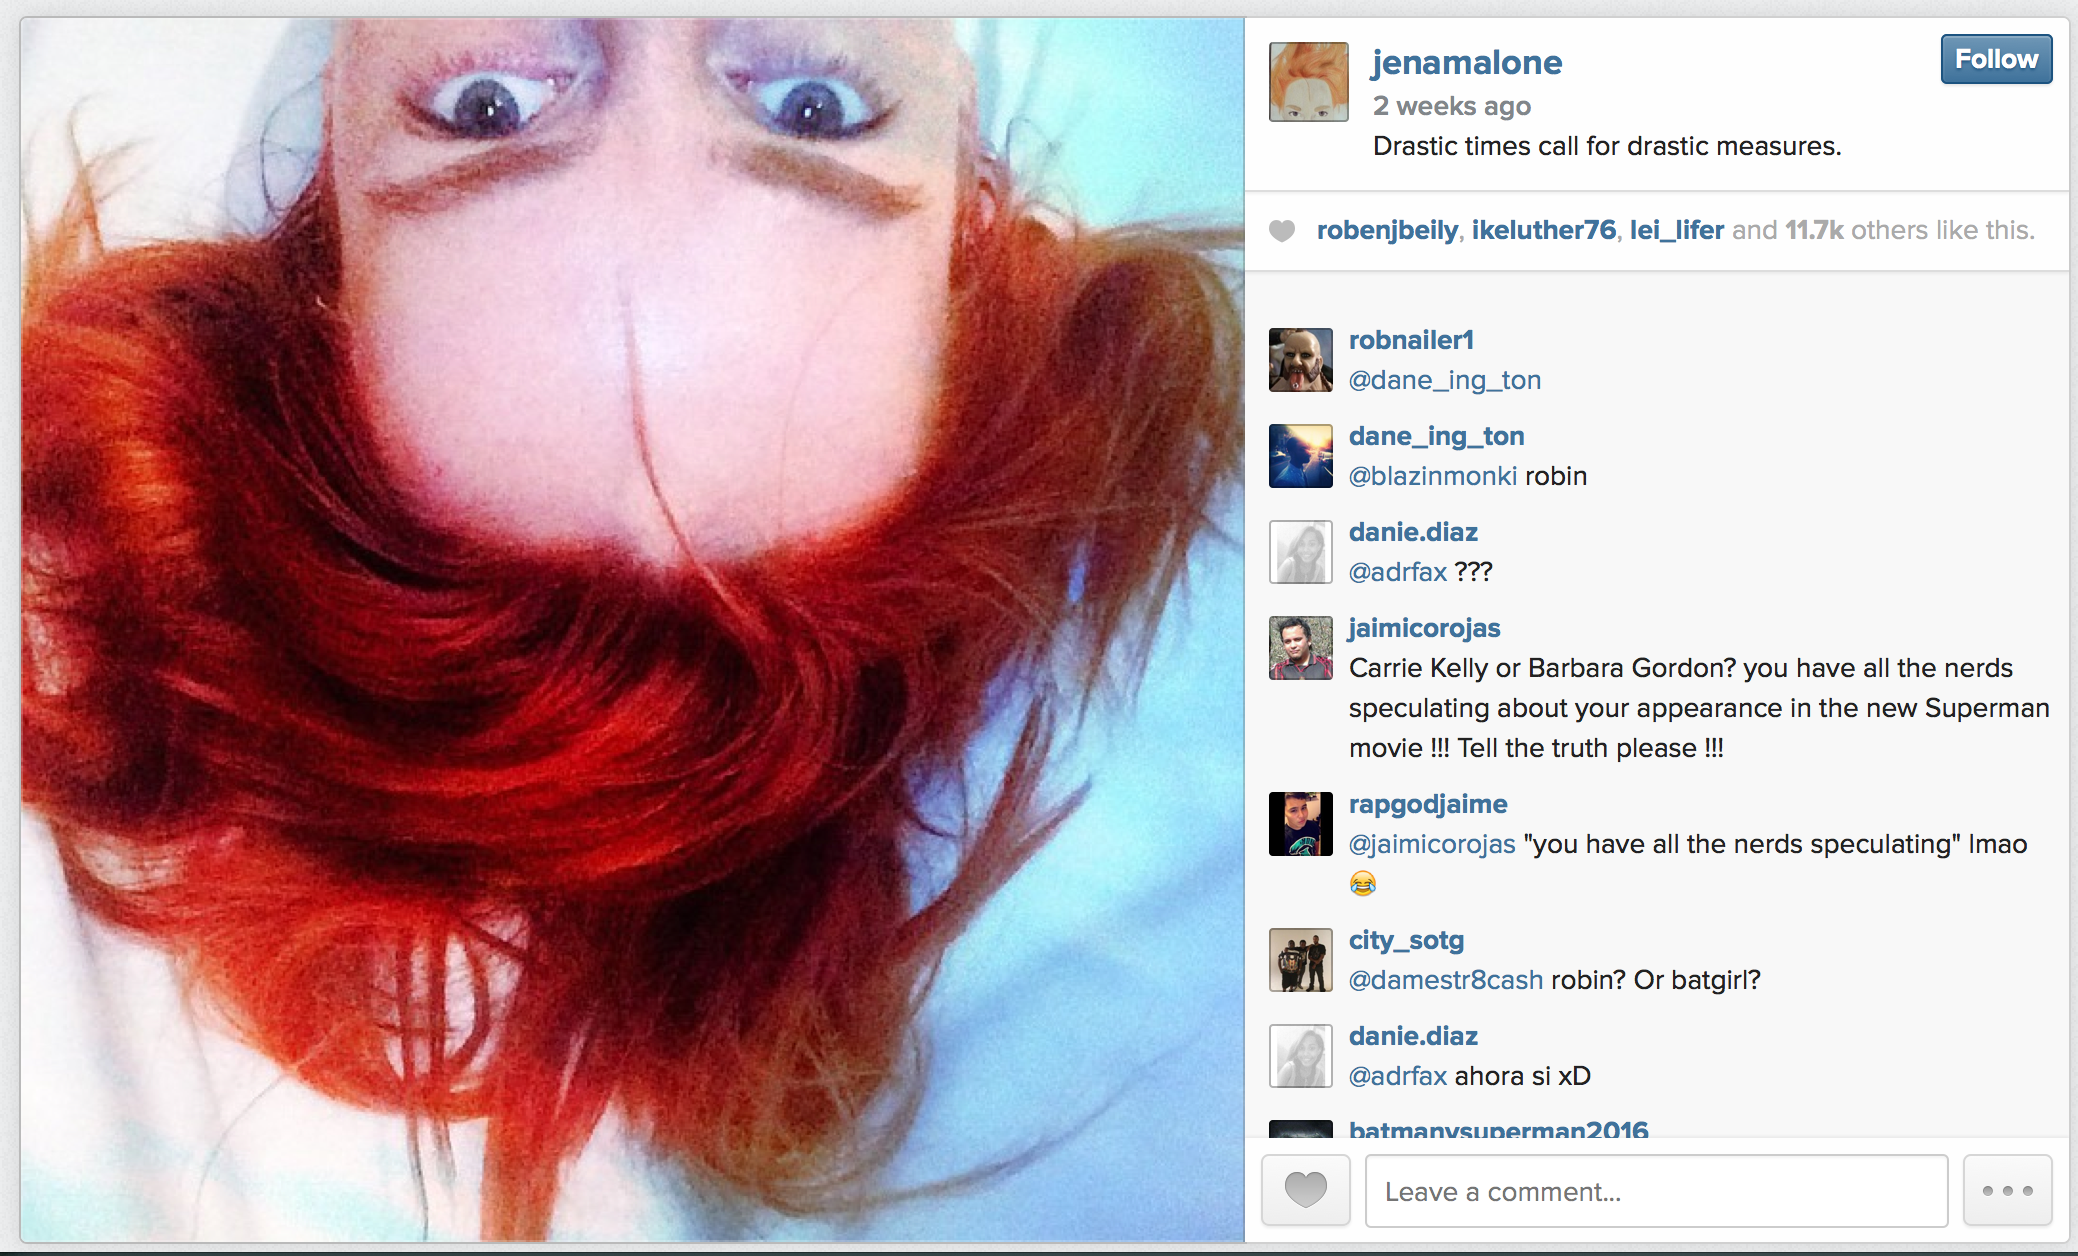 Jena Malone Instagrams new red hair